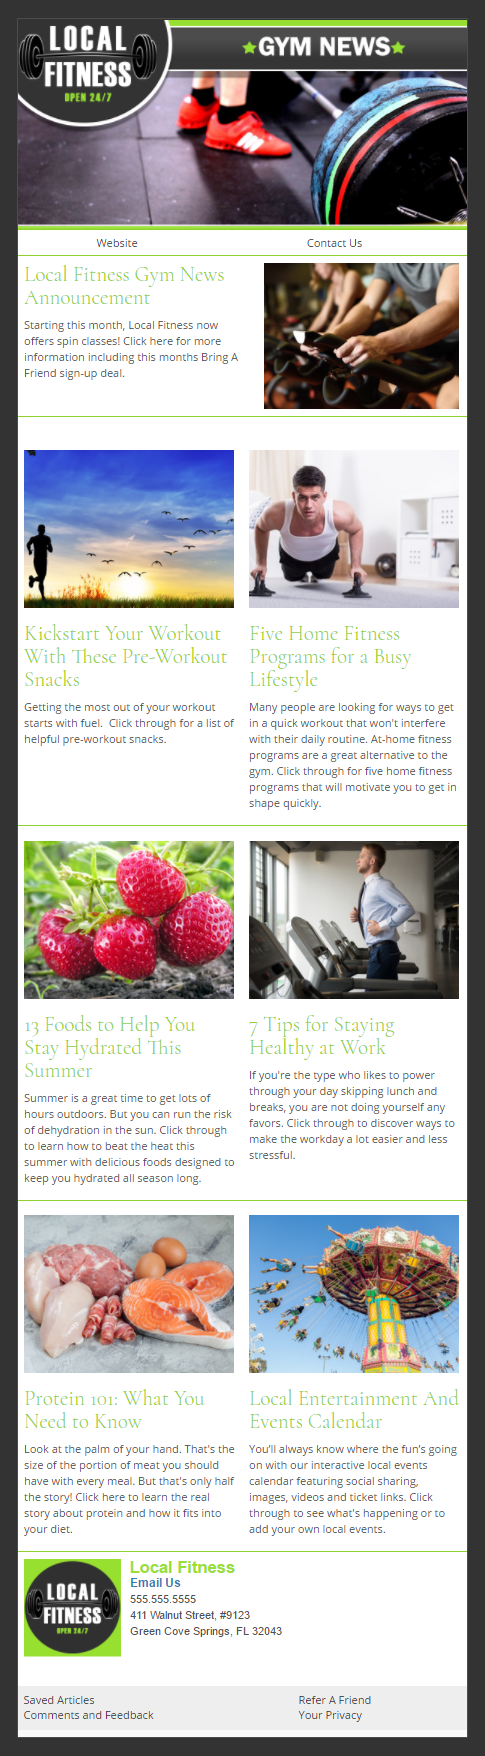 Local Fitness - IndustryNewsletters Sample Email Newsletter